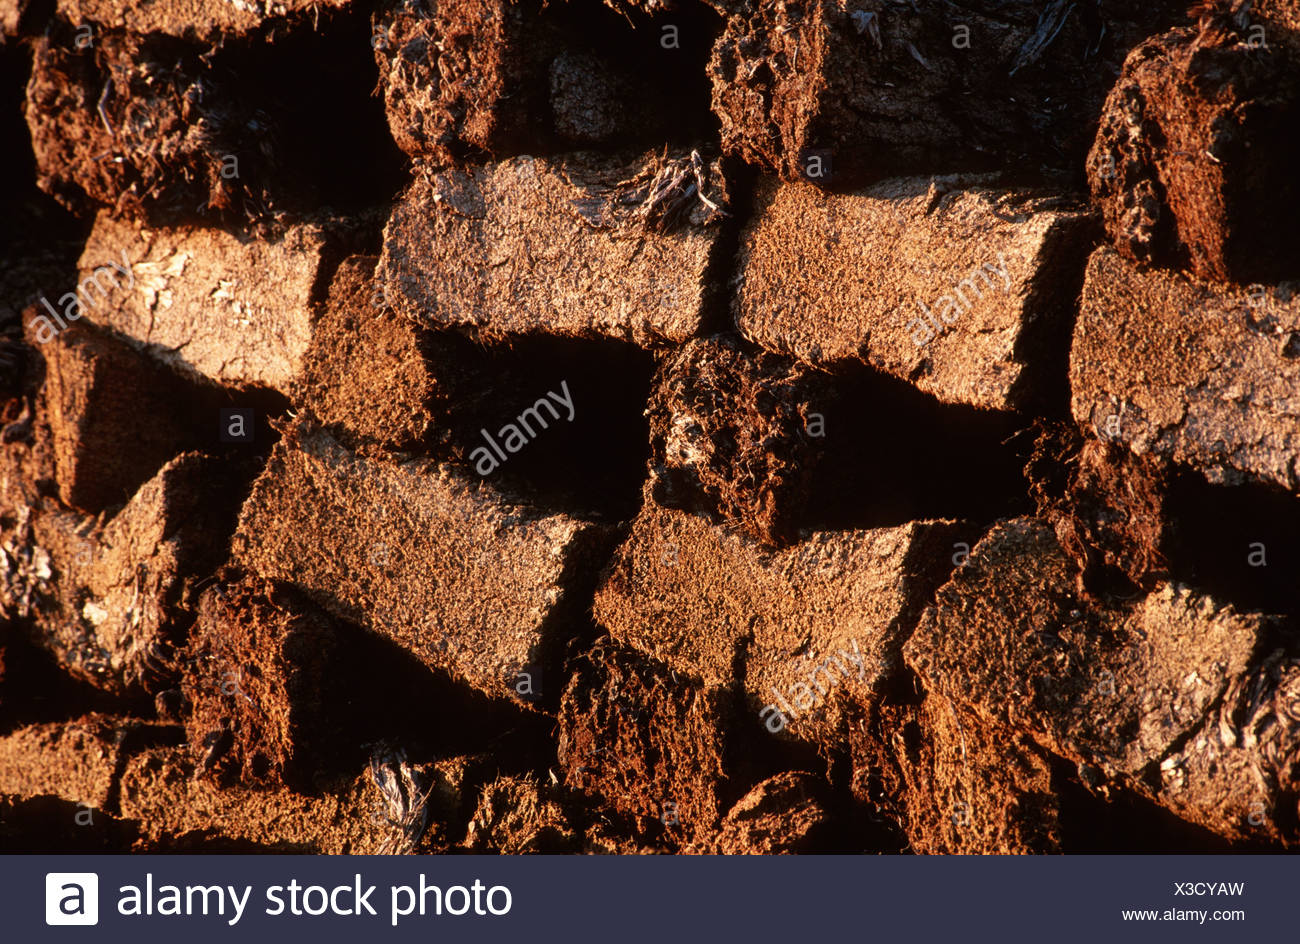 peat bricks, piled for drying, evening light, Germany, Lower Saxony - Stock Image